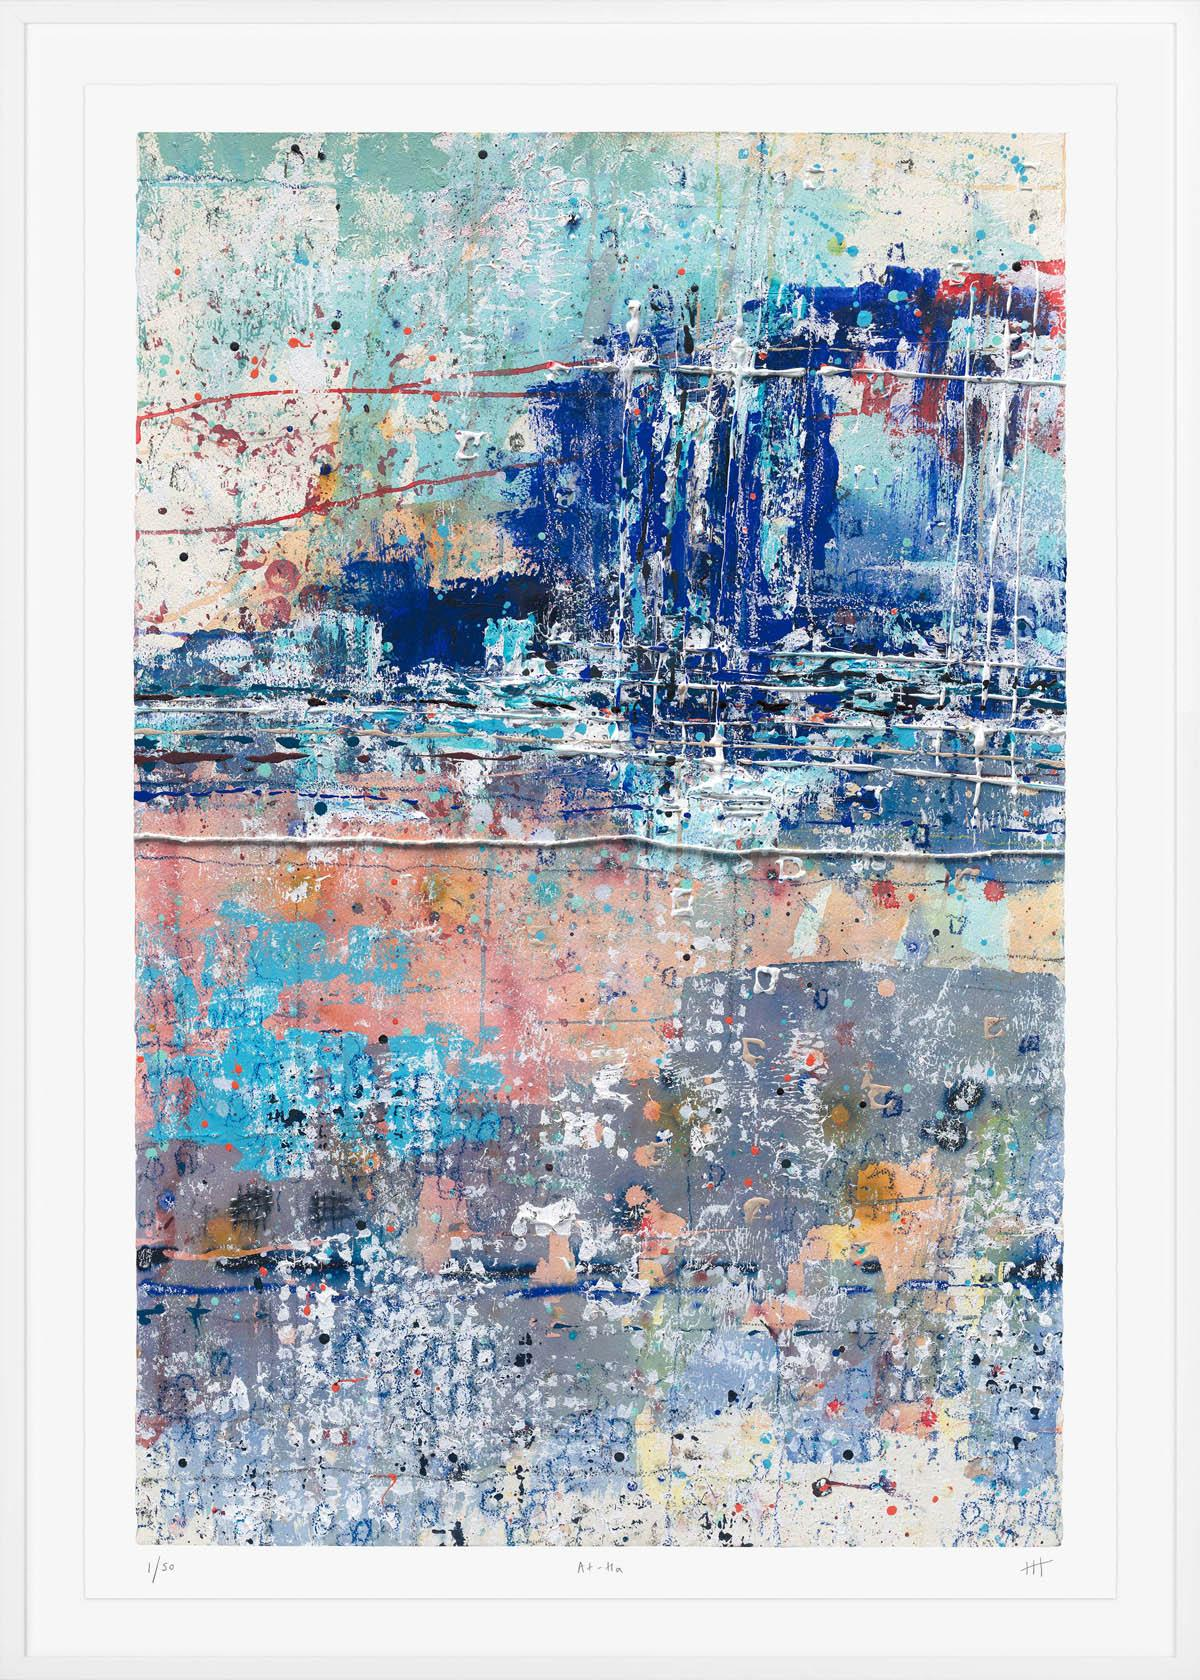 Harriet Hoult, At-Ha, Signed Limited Edition Print Abstract Print